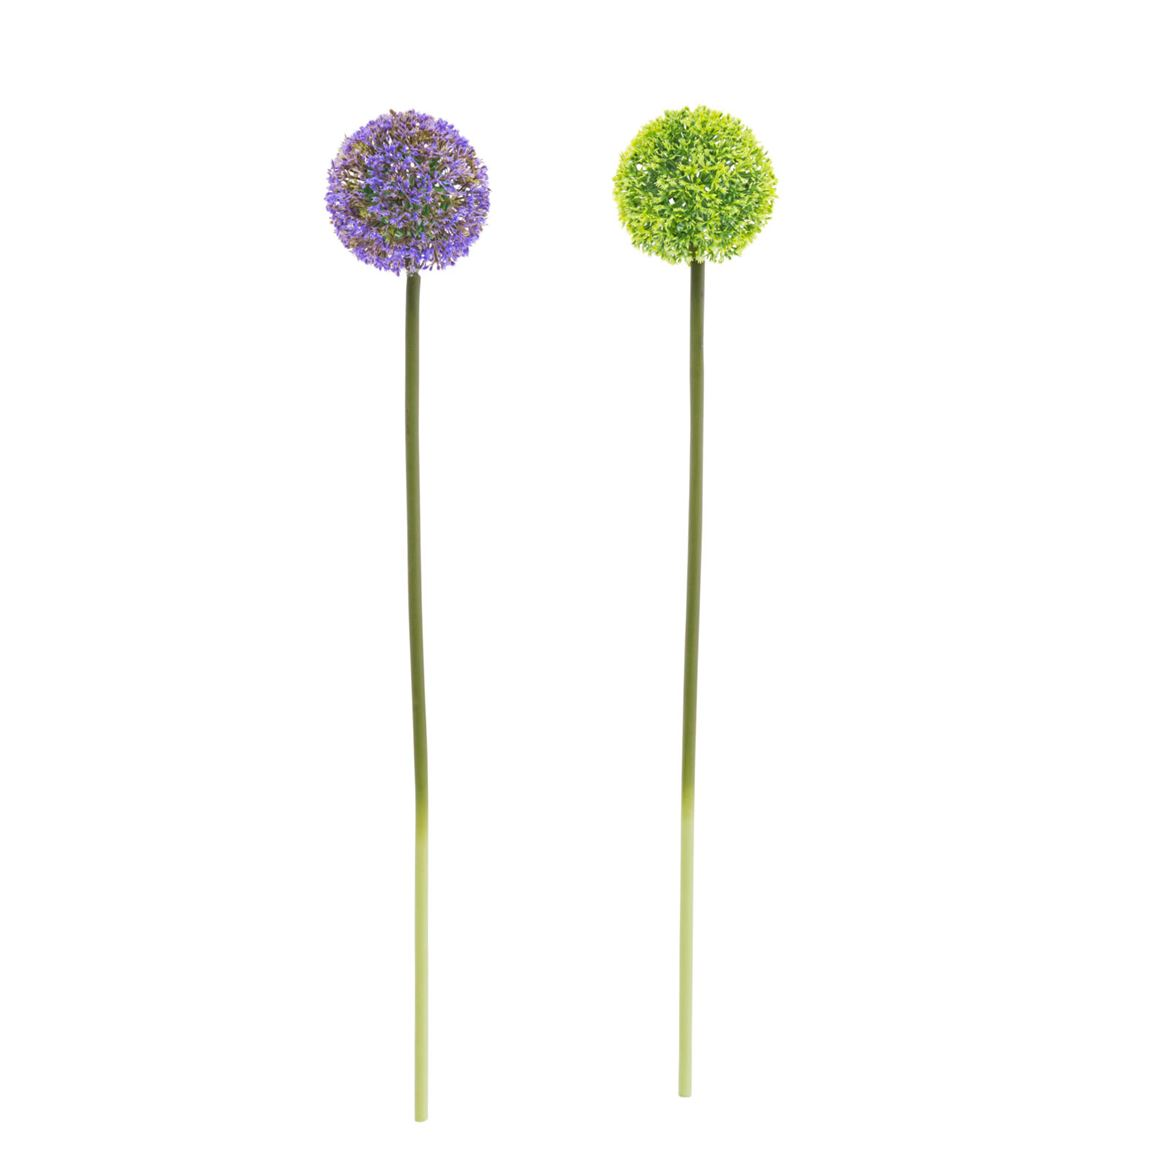 ALLIUM Plante artificielle 2 couleurs vert, mauve Long. 55 cm_allium-plante-artificielle-2-couleurs-vert,-mauve-long--55-cm